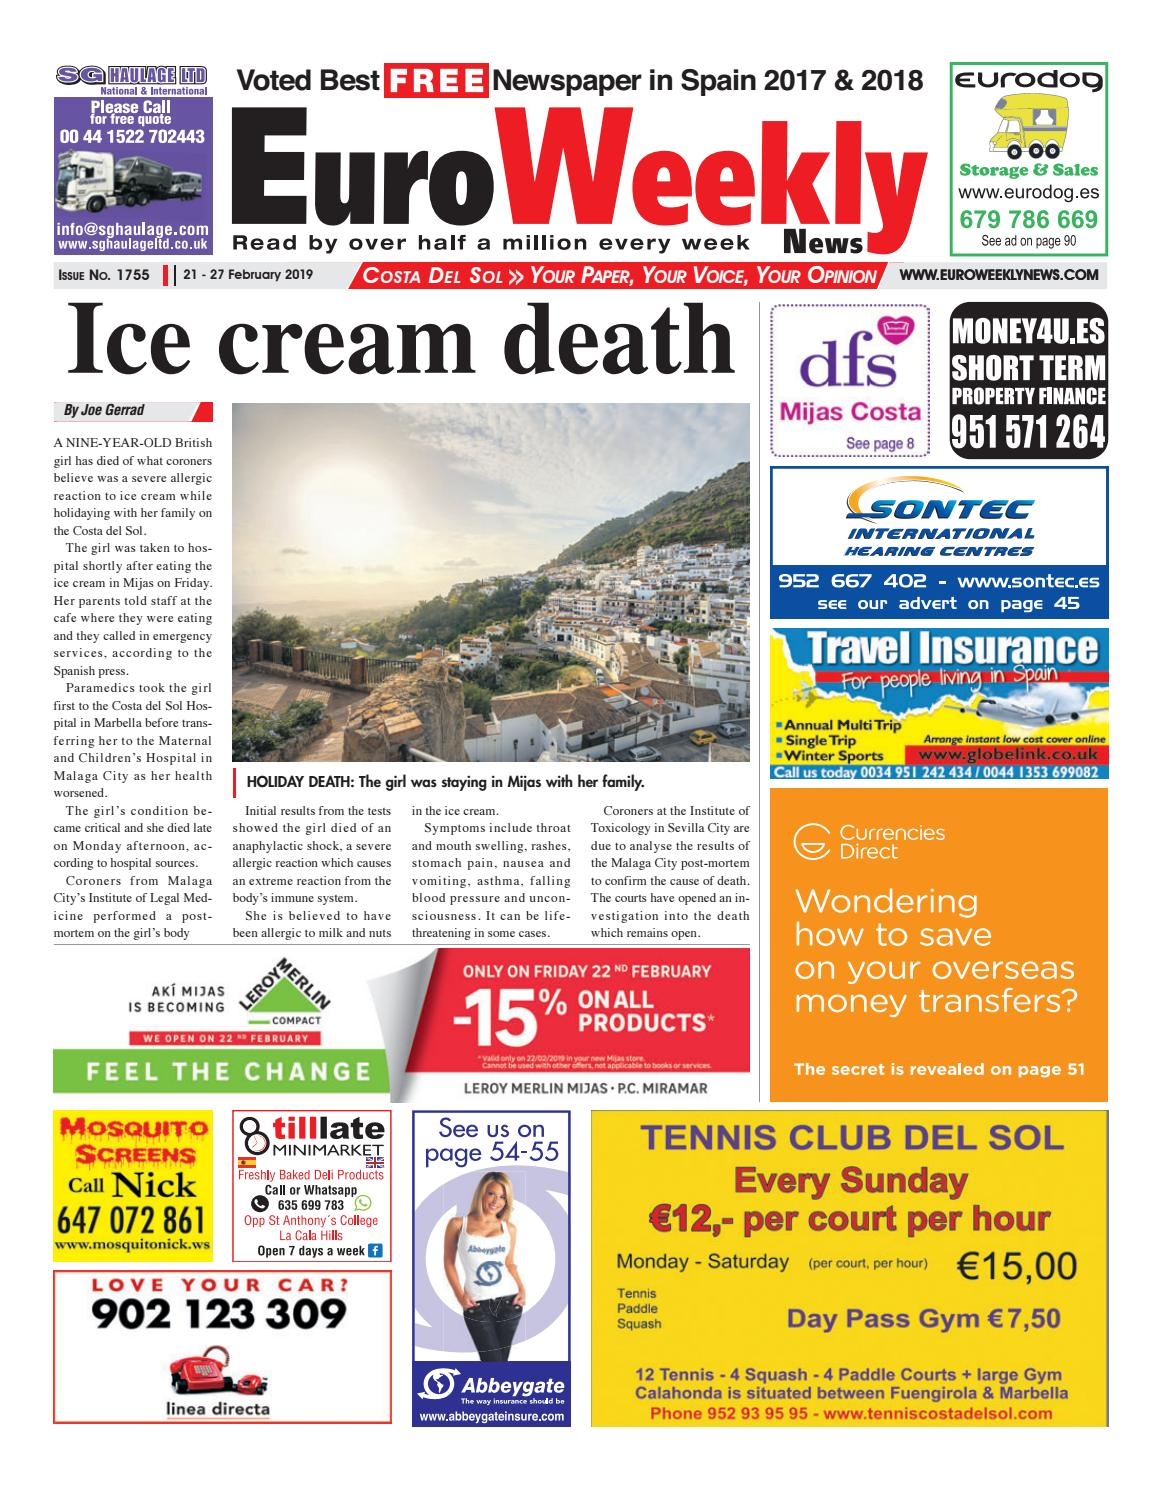 890e5e732 Euro Weekly News - Costa del Sol 21 - 27 Feb 2019 Issue 1755 by Euro Weekly  News Media S.A. - issuu